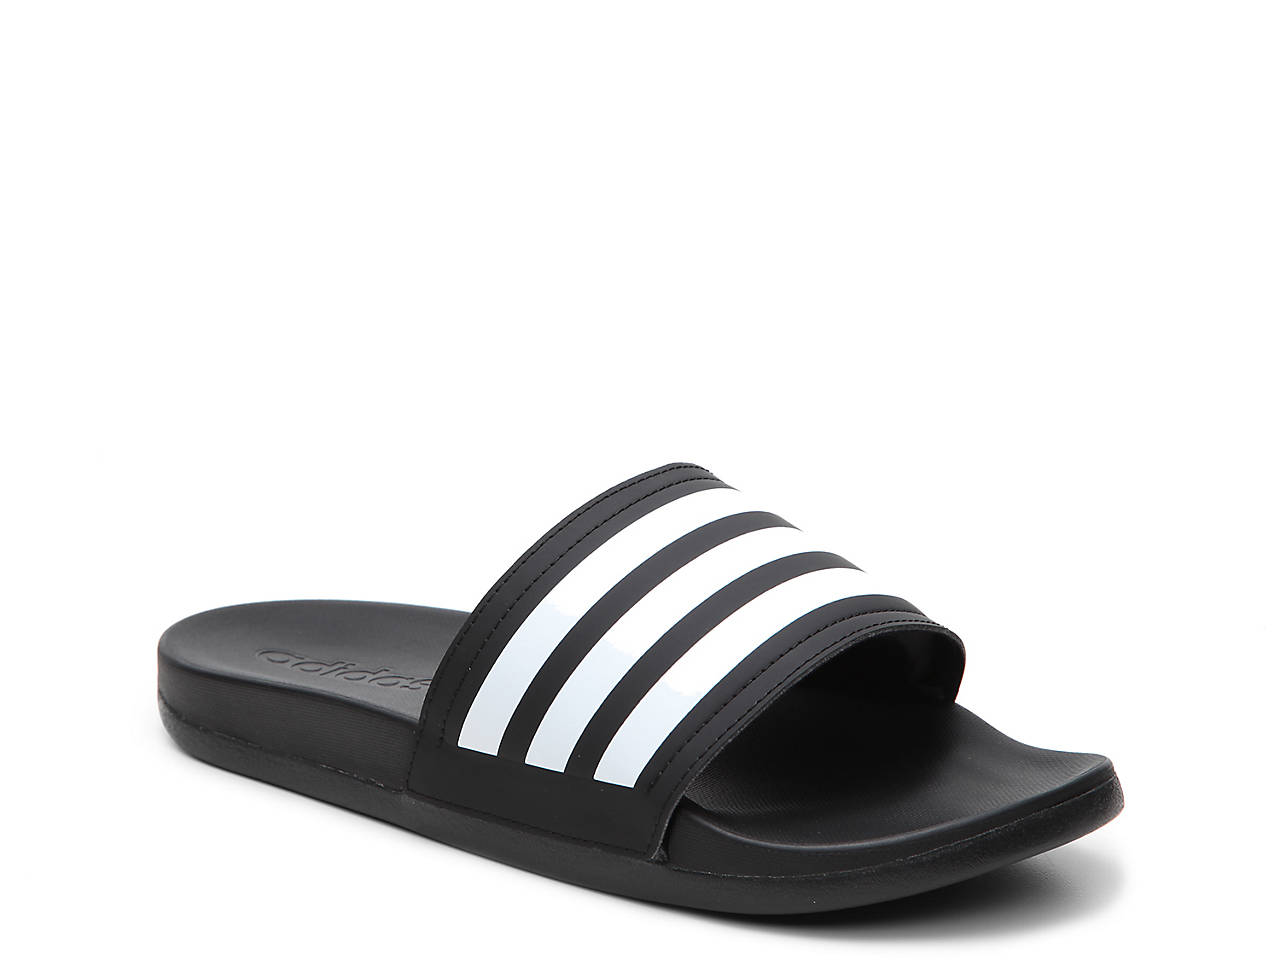 81b1525f9 adidas Adilette Cloudfoam Ultra Stripes Slide Sandal - Women s ...